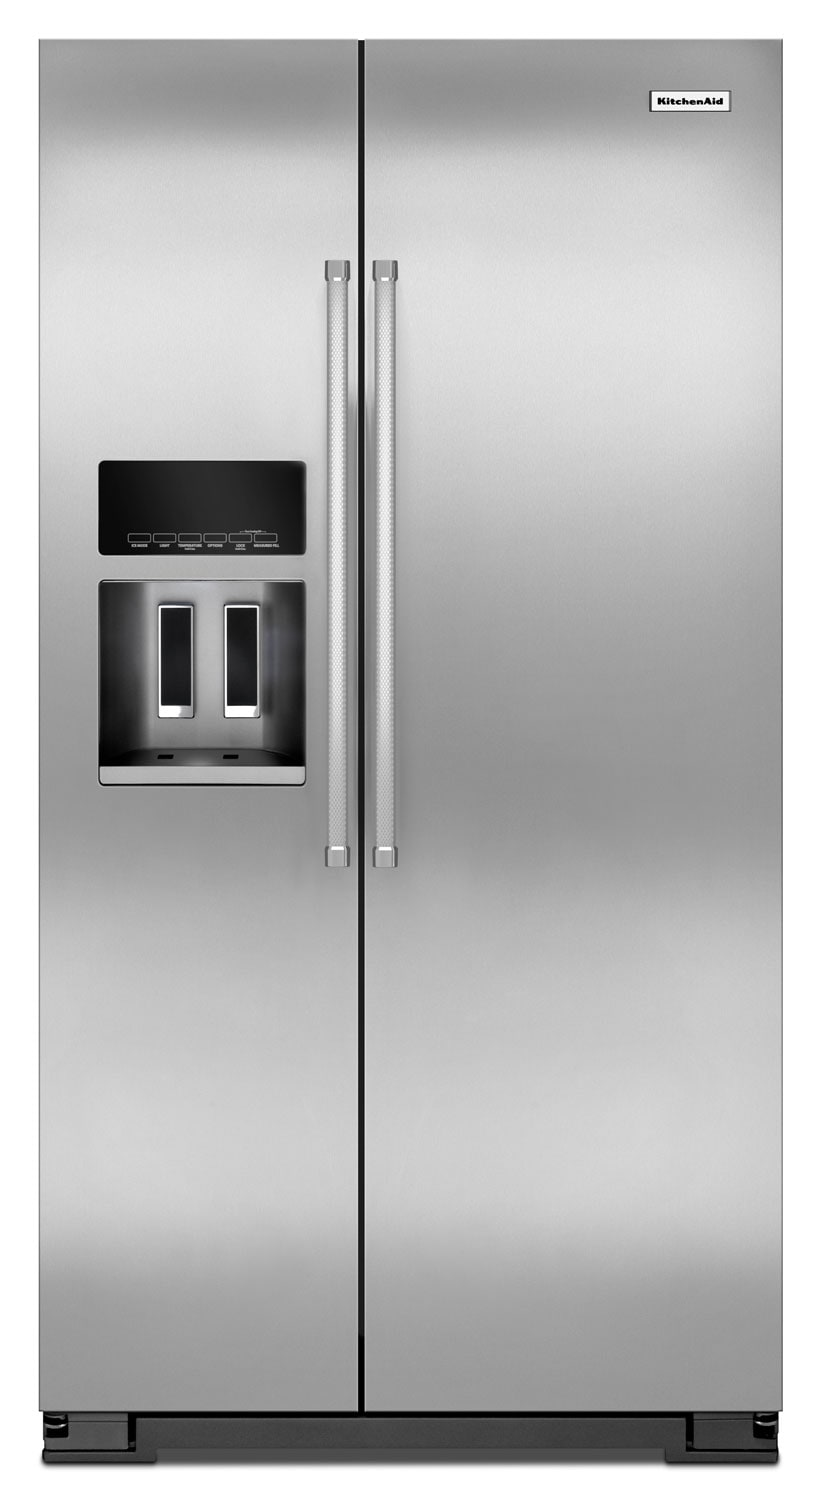 KitchenAid Stainless Steel Counter-Depth Side-by-Side Refrigerator (19.9 Cu. Ft.) - KRSC500ESS